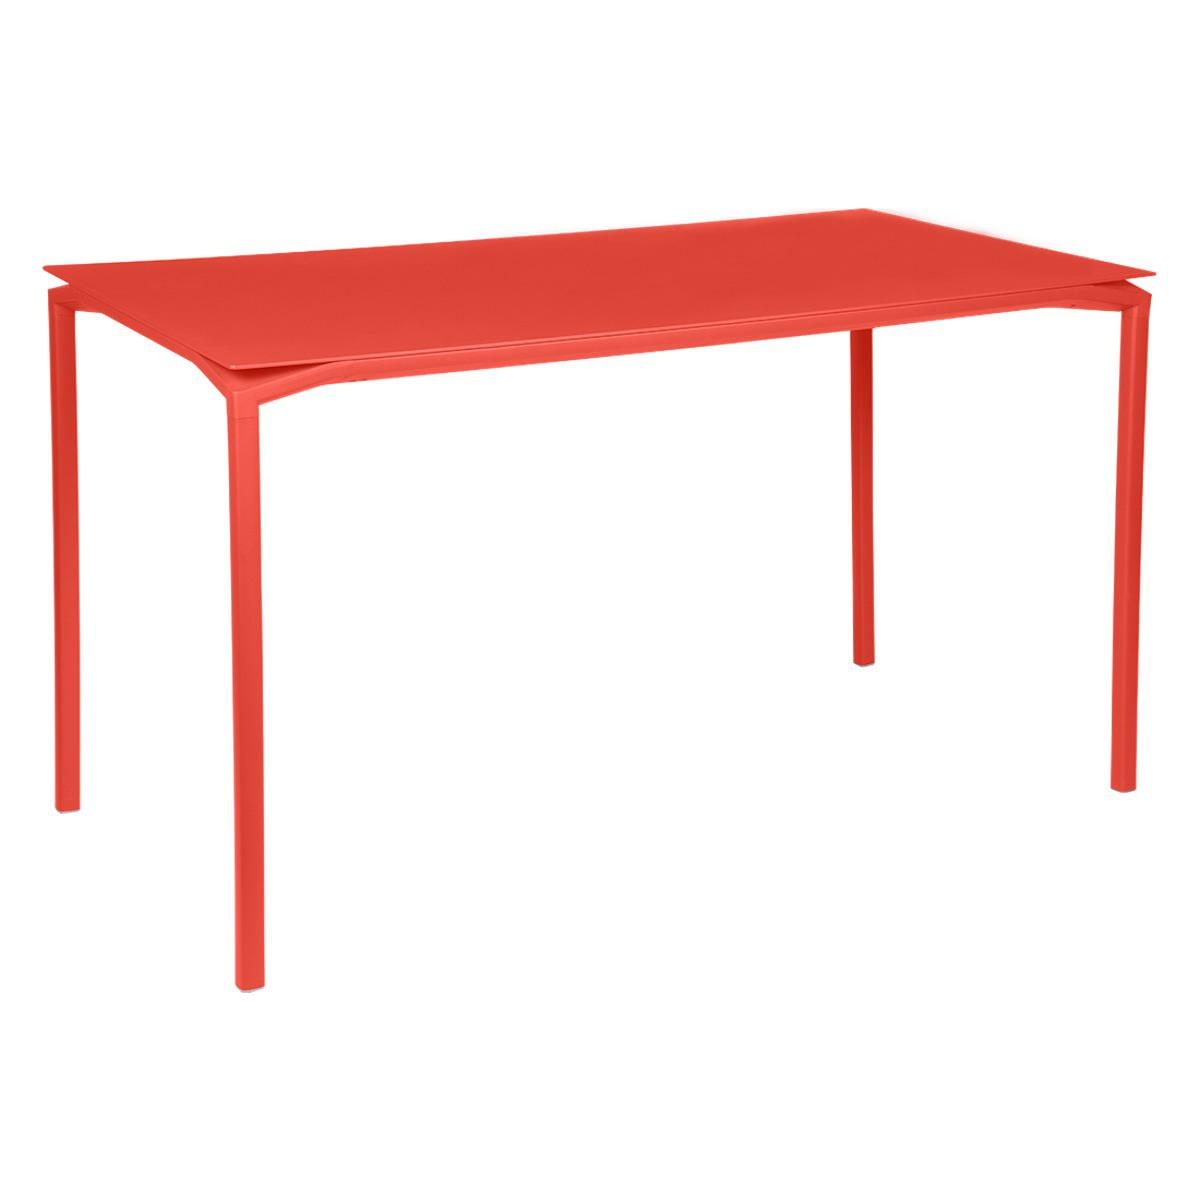 Table 80x160cm CALVI Fermob  orange capucine